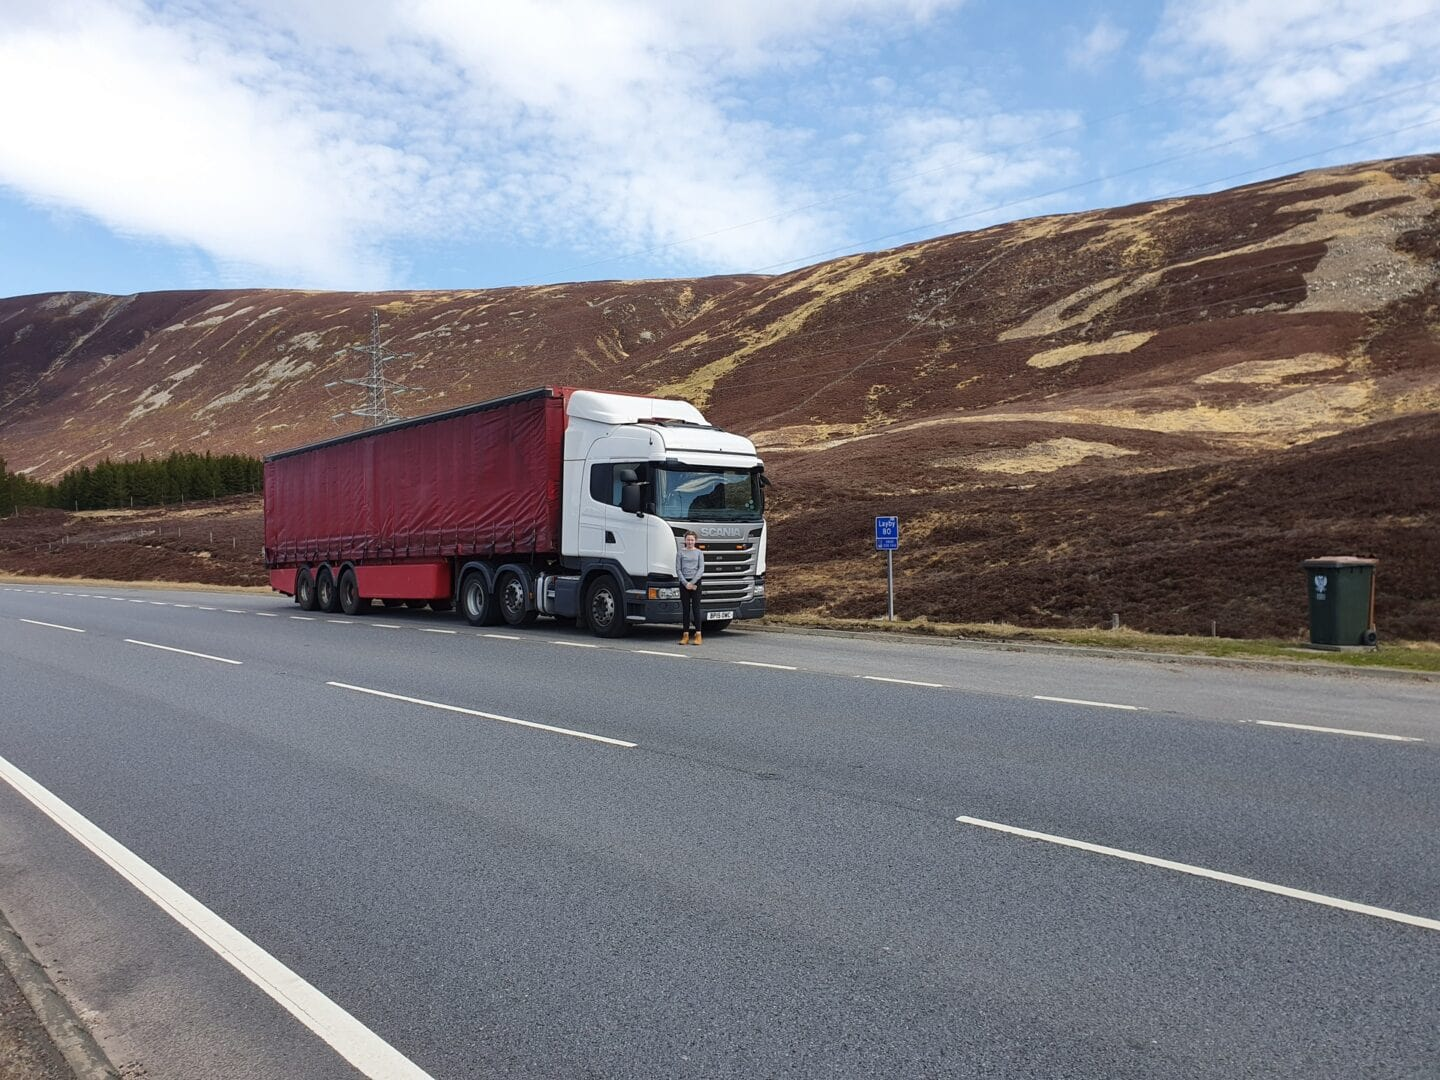 TTM Distribution Trucks / Red truck driving on the highway